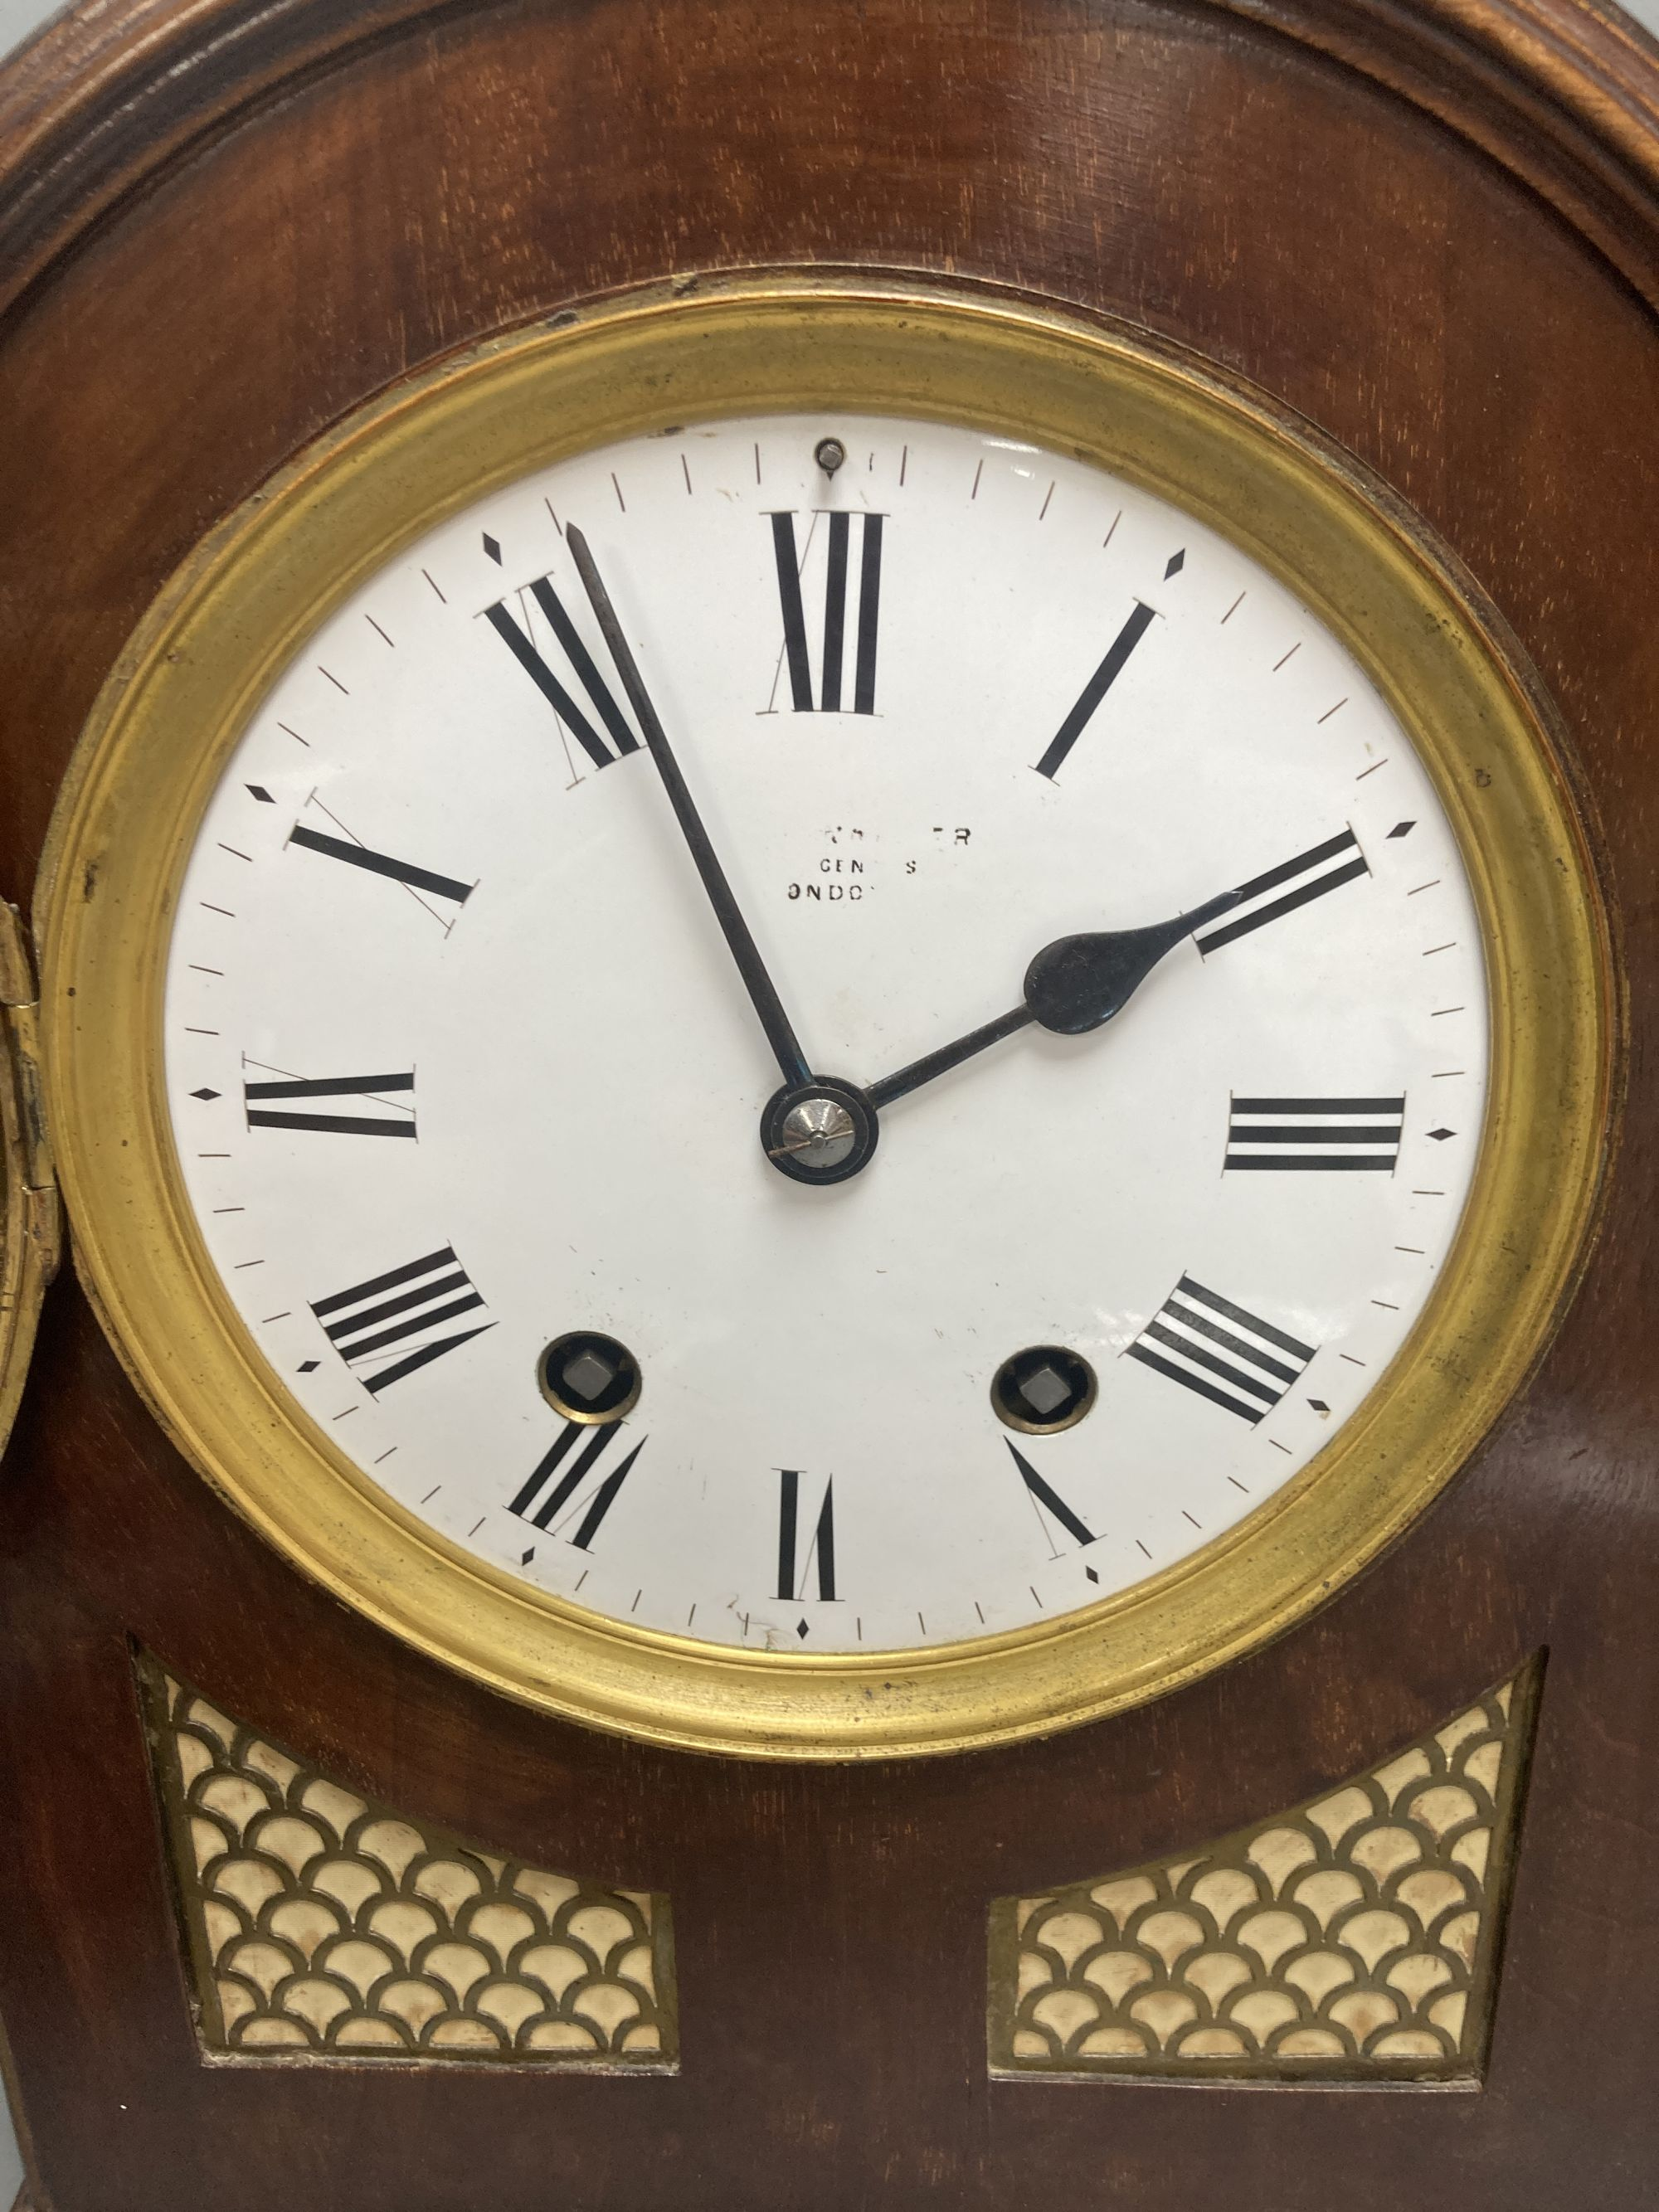 A German 19th century chiming bracket clock, in George III style, with brass grills, height 40cm - Image 2 of 4